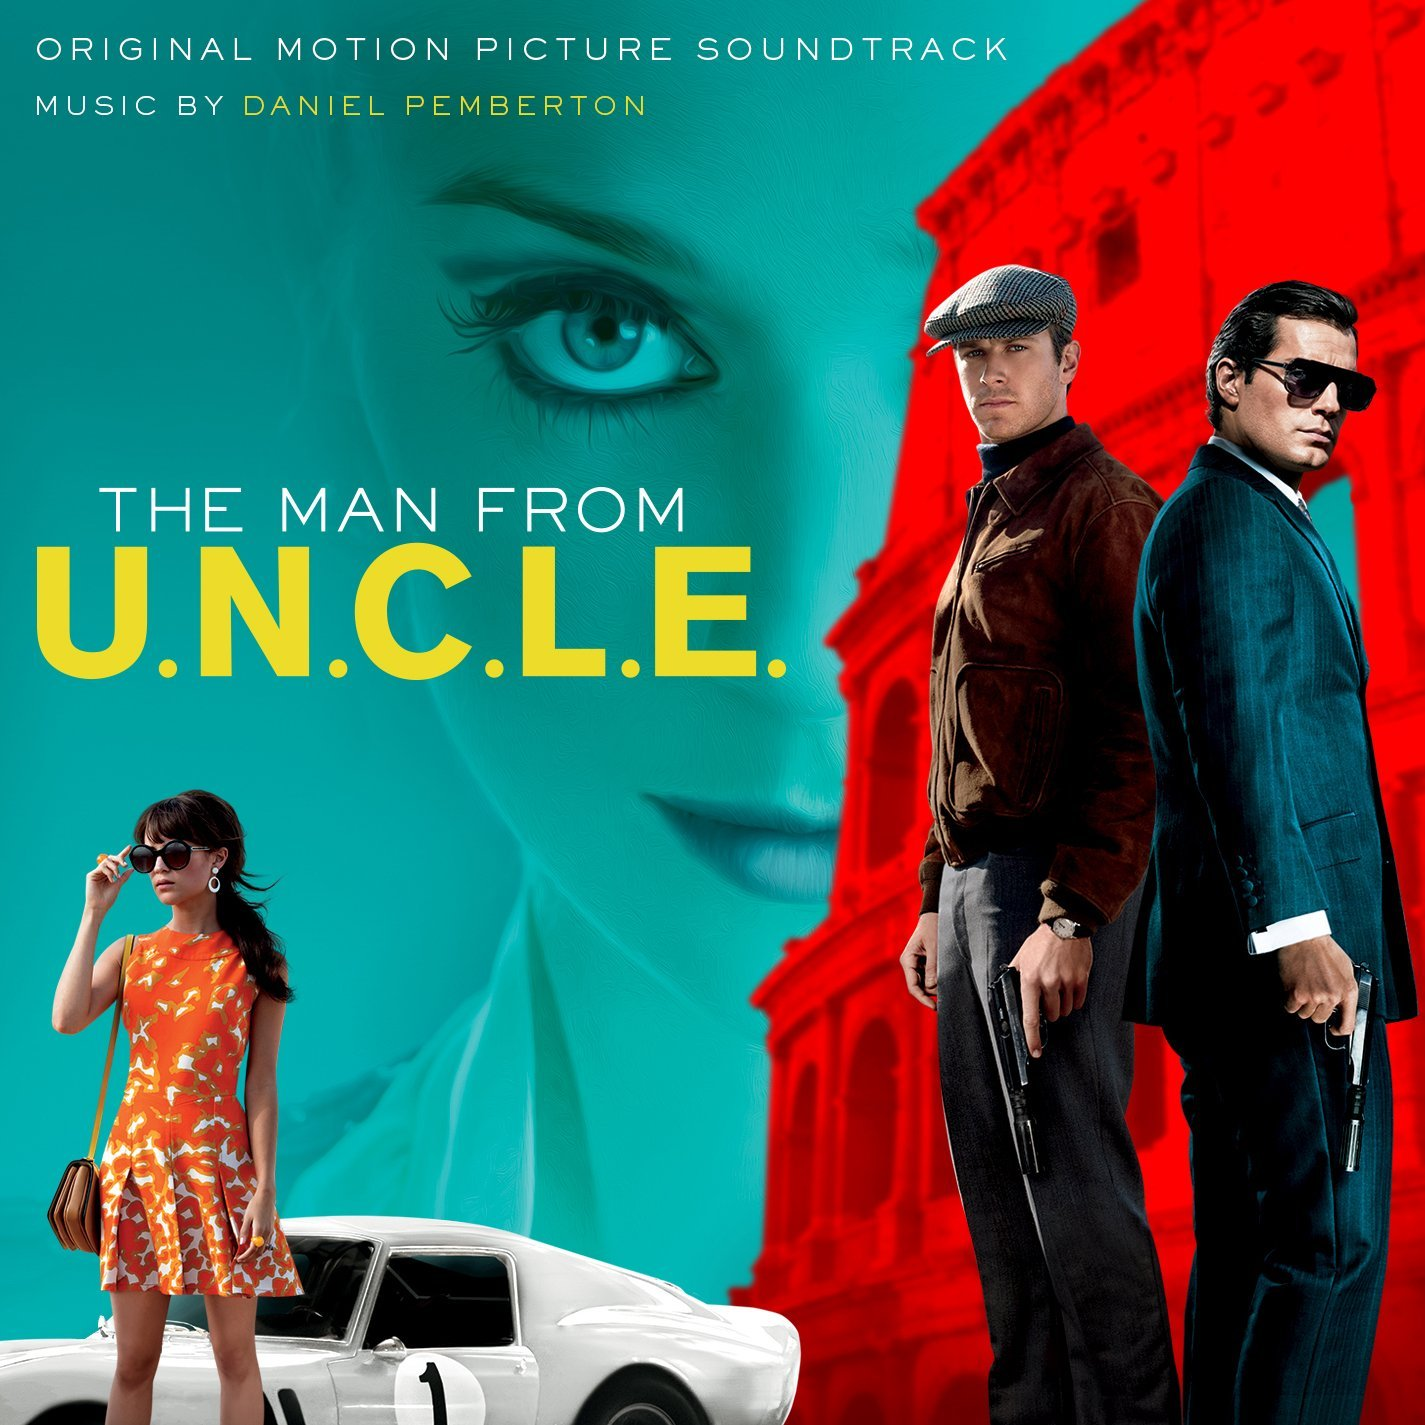 Daniel Pemberton ‎– The Man From U.N.C.L.E.